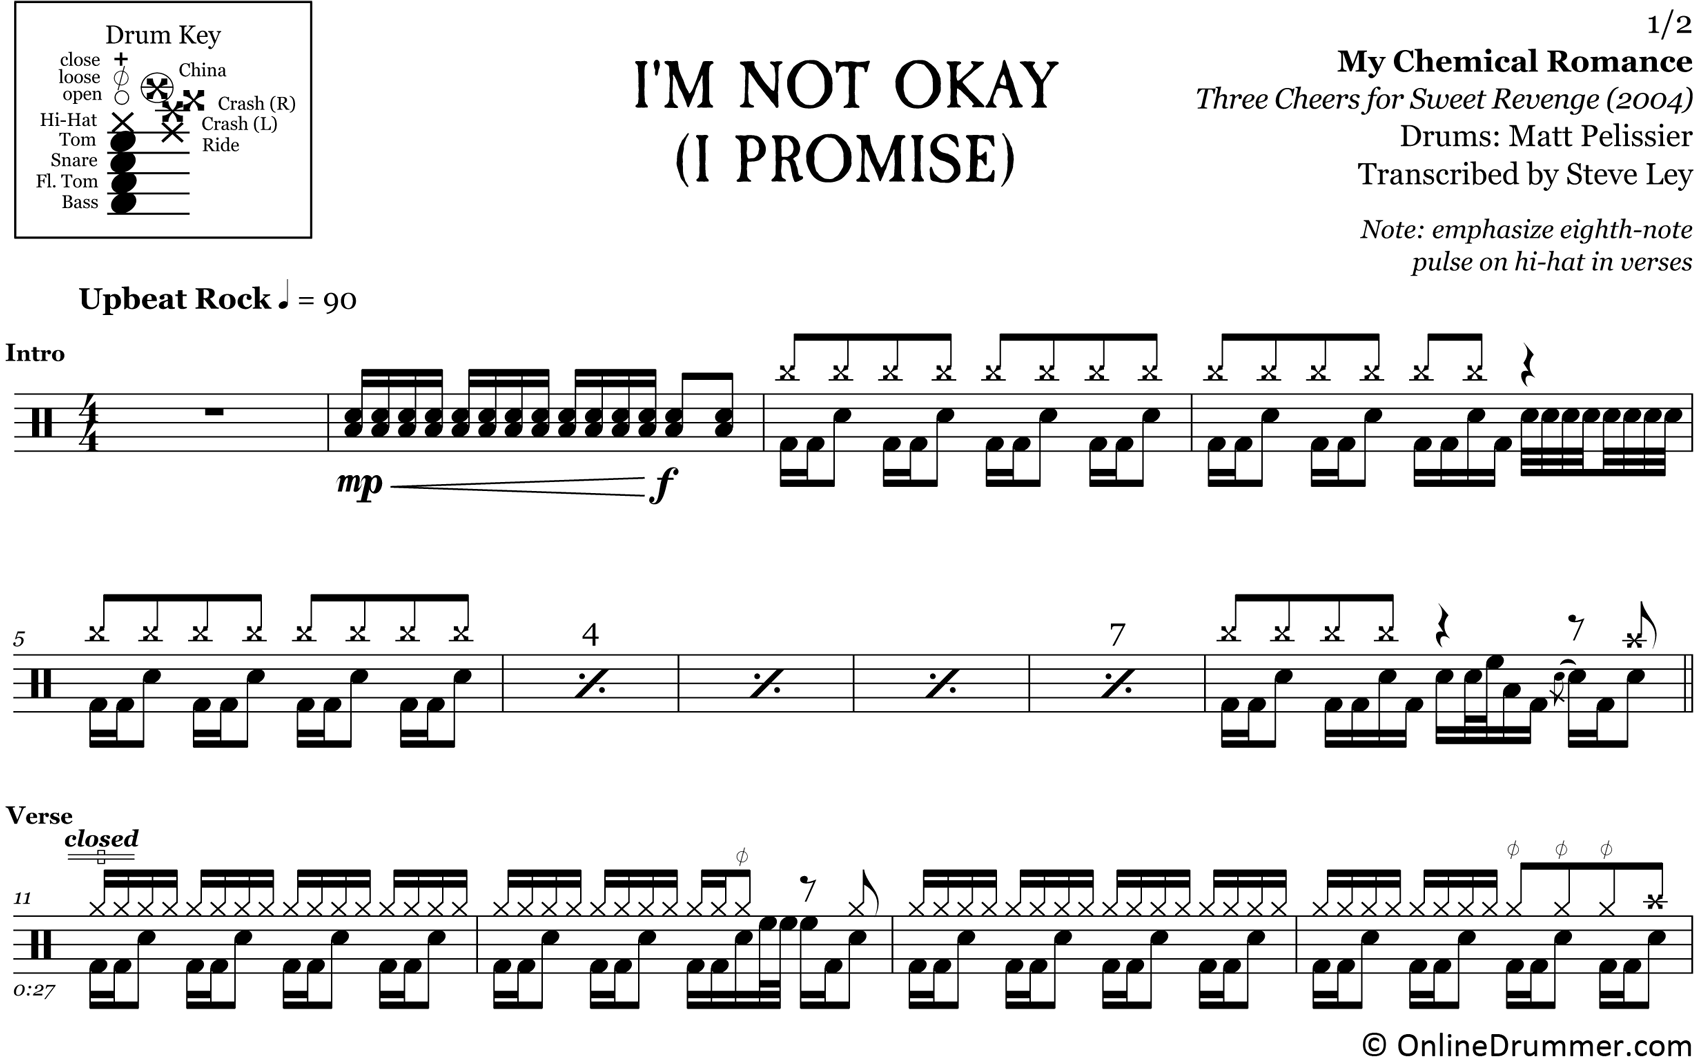 I'm Not Okay (I Promise) - My Chemical Romance - Drum Sheet Music